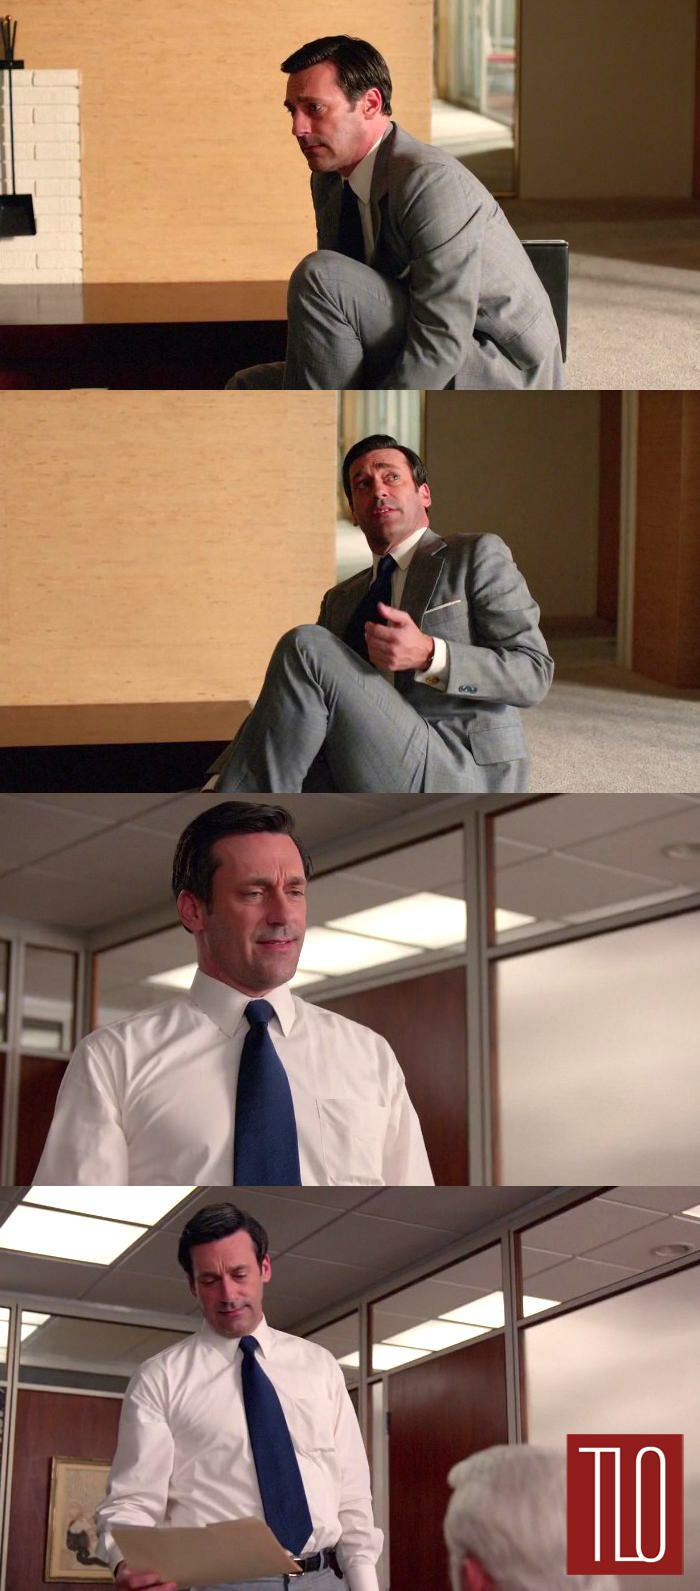 Mad-Men-Television-Mad-Style-Episode-New-Business-Tom-Lorenzo-Site-TLO (4)